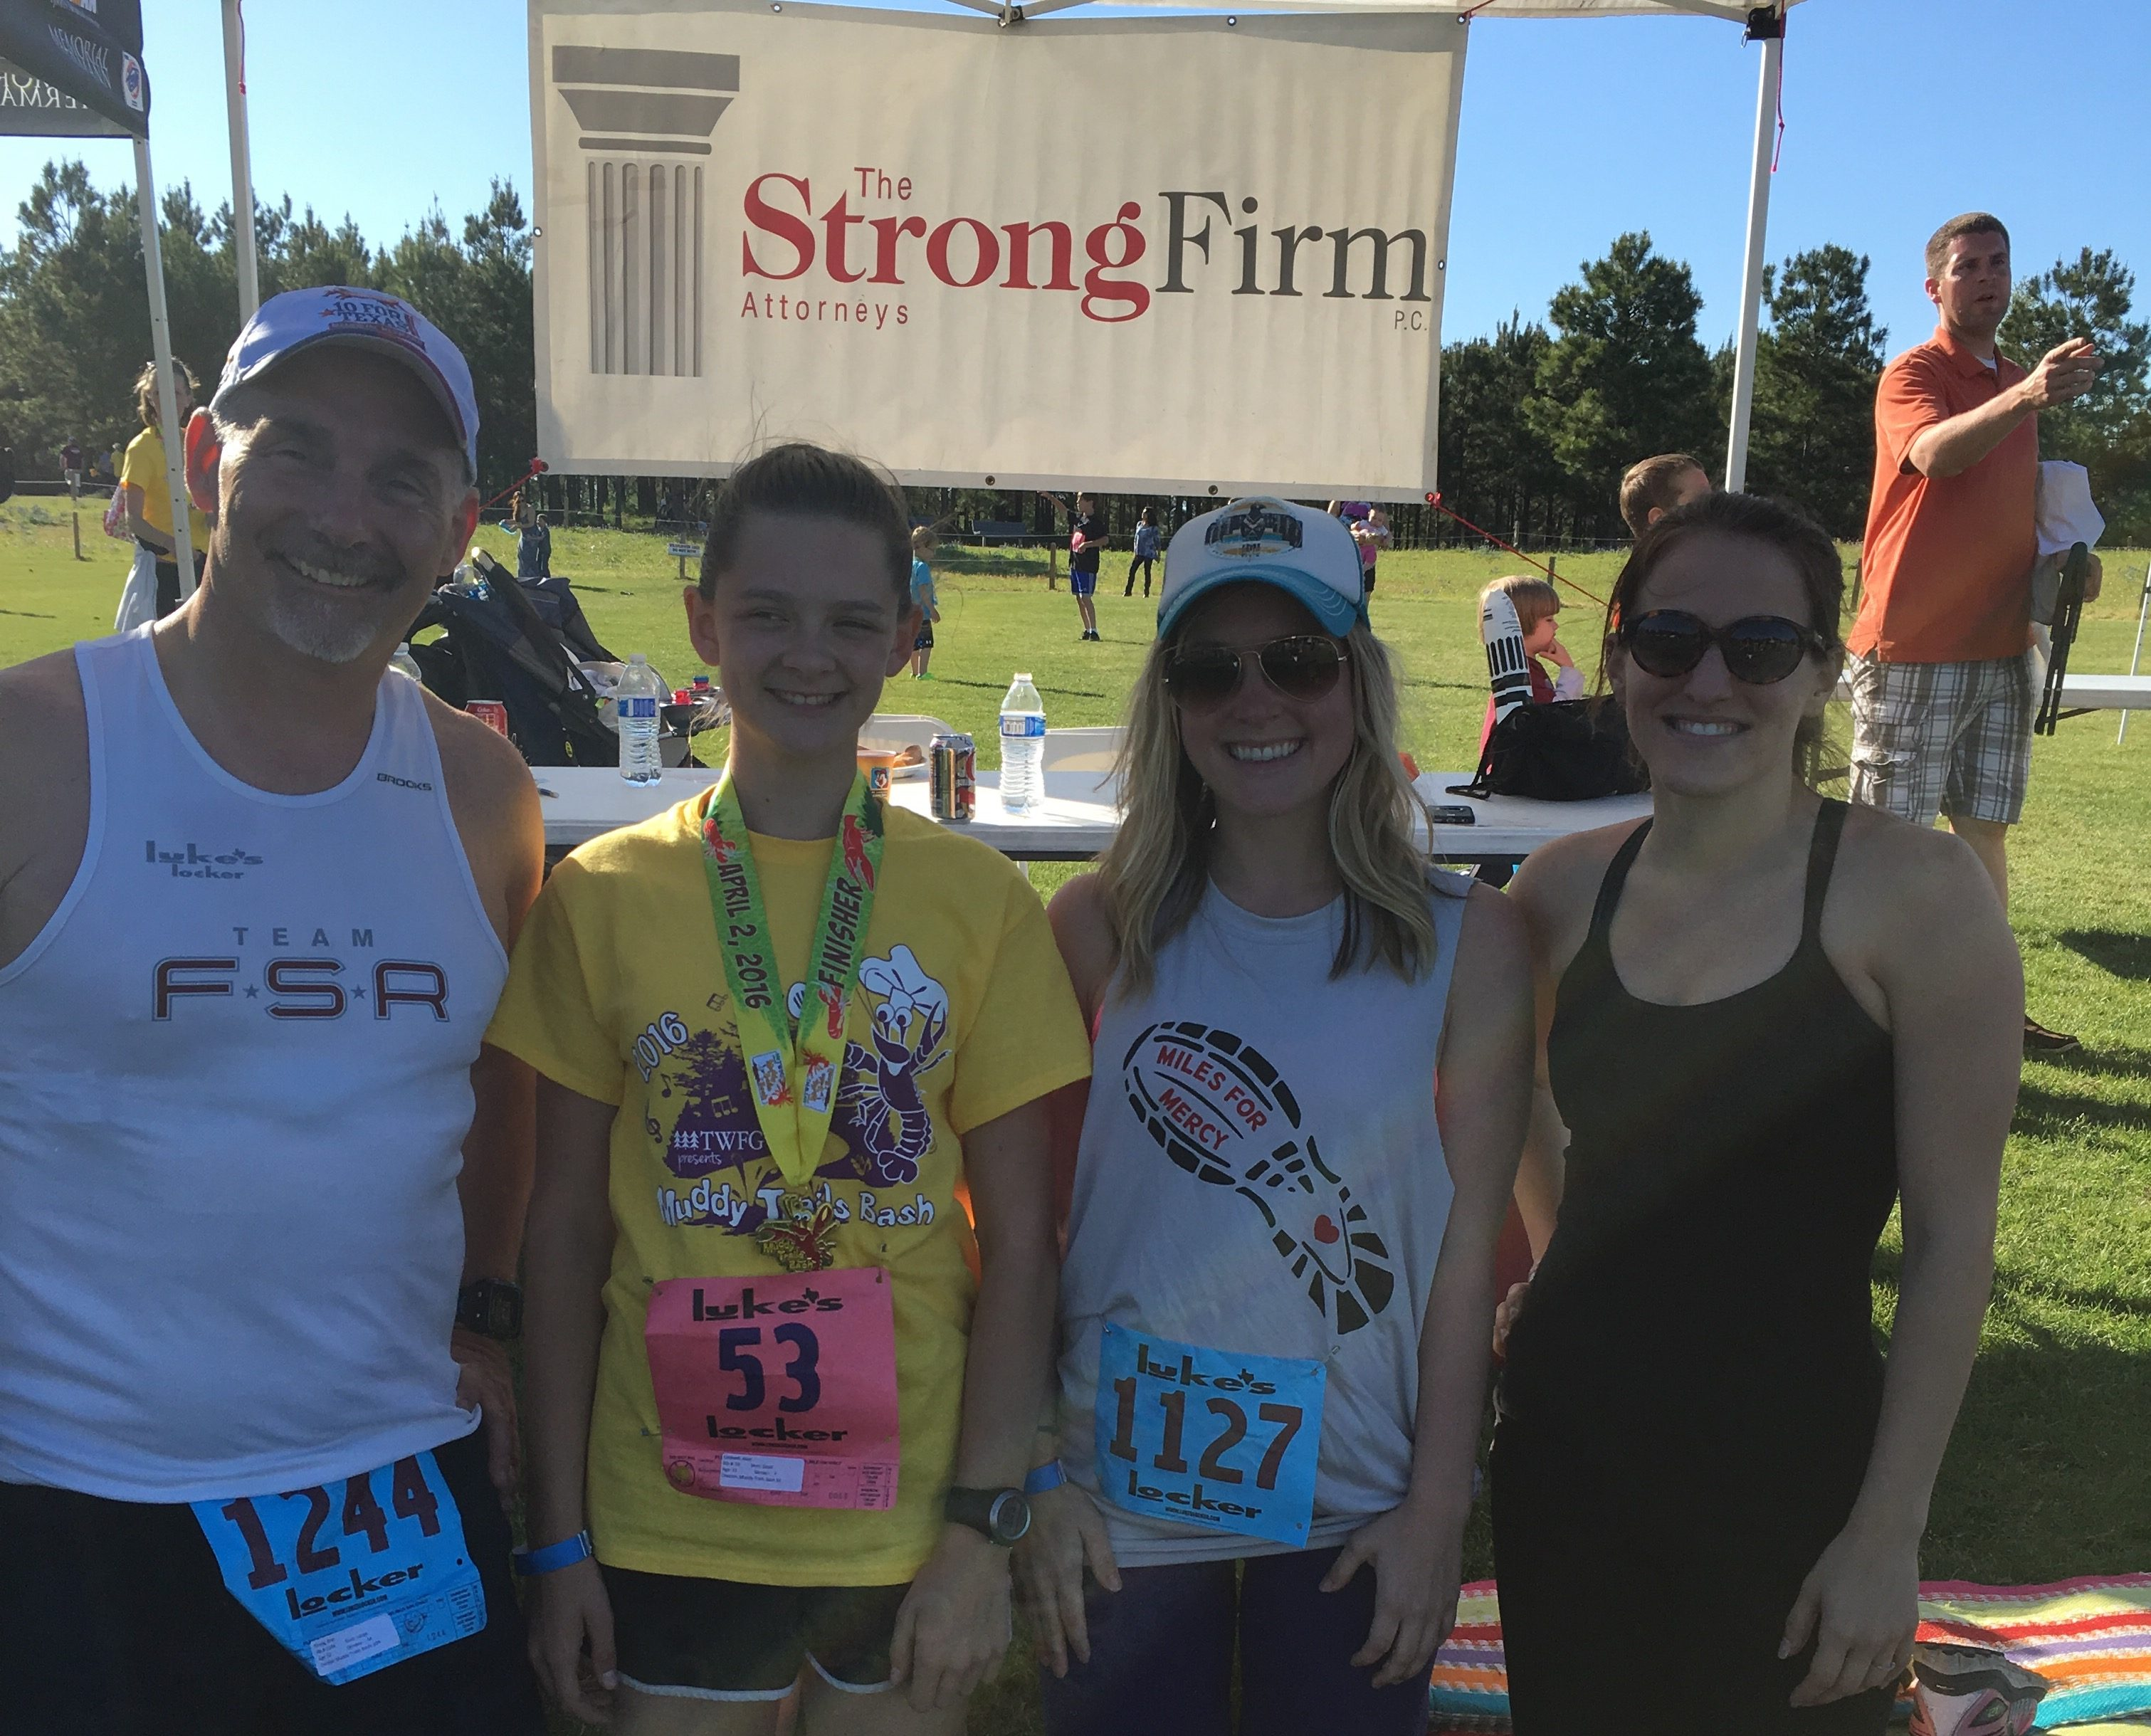 The Strong Firm sponsored and participated in the annual Muddy Trails Bash held at Rob Fleming Park on April 2, 2016. Shown from left to right are Bret Strong, Alexi Caldwell, Bethany Kovacs and Laura Davis.